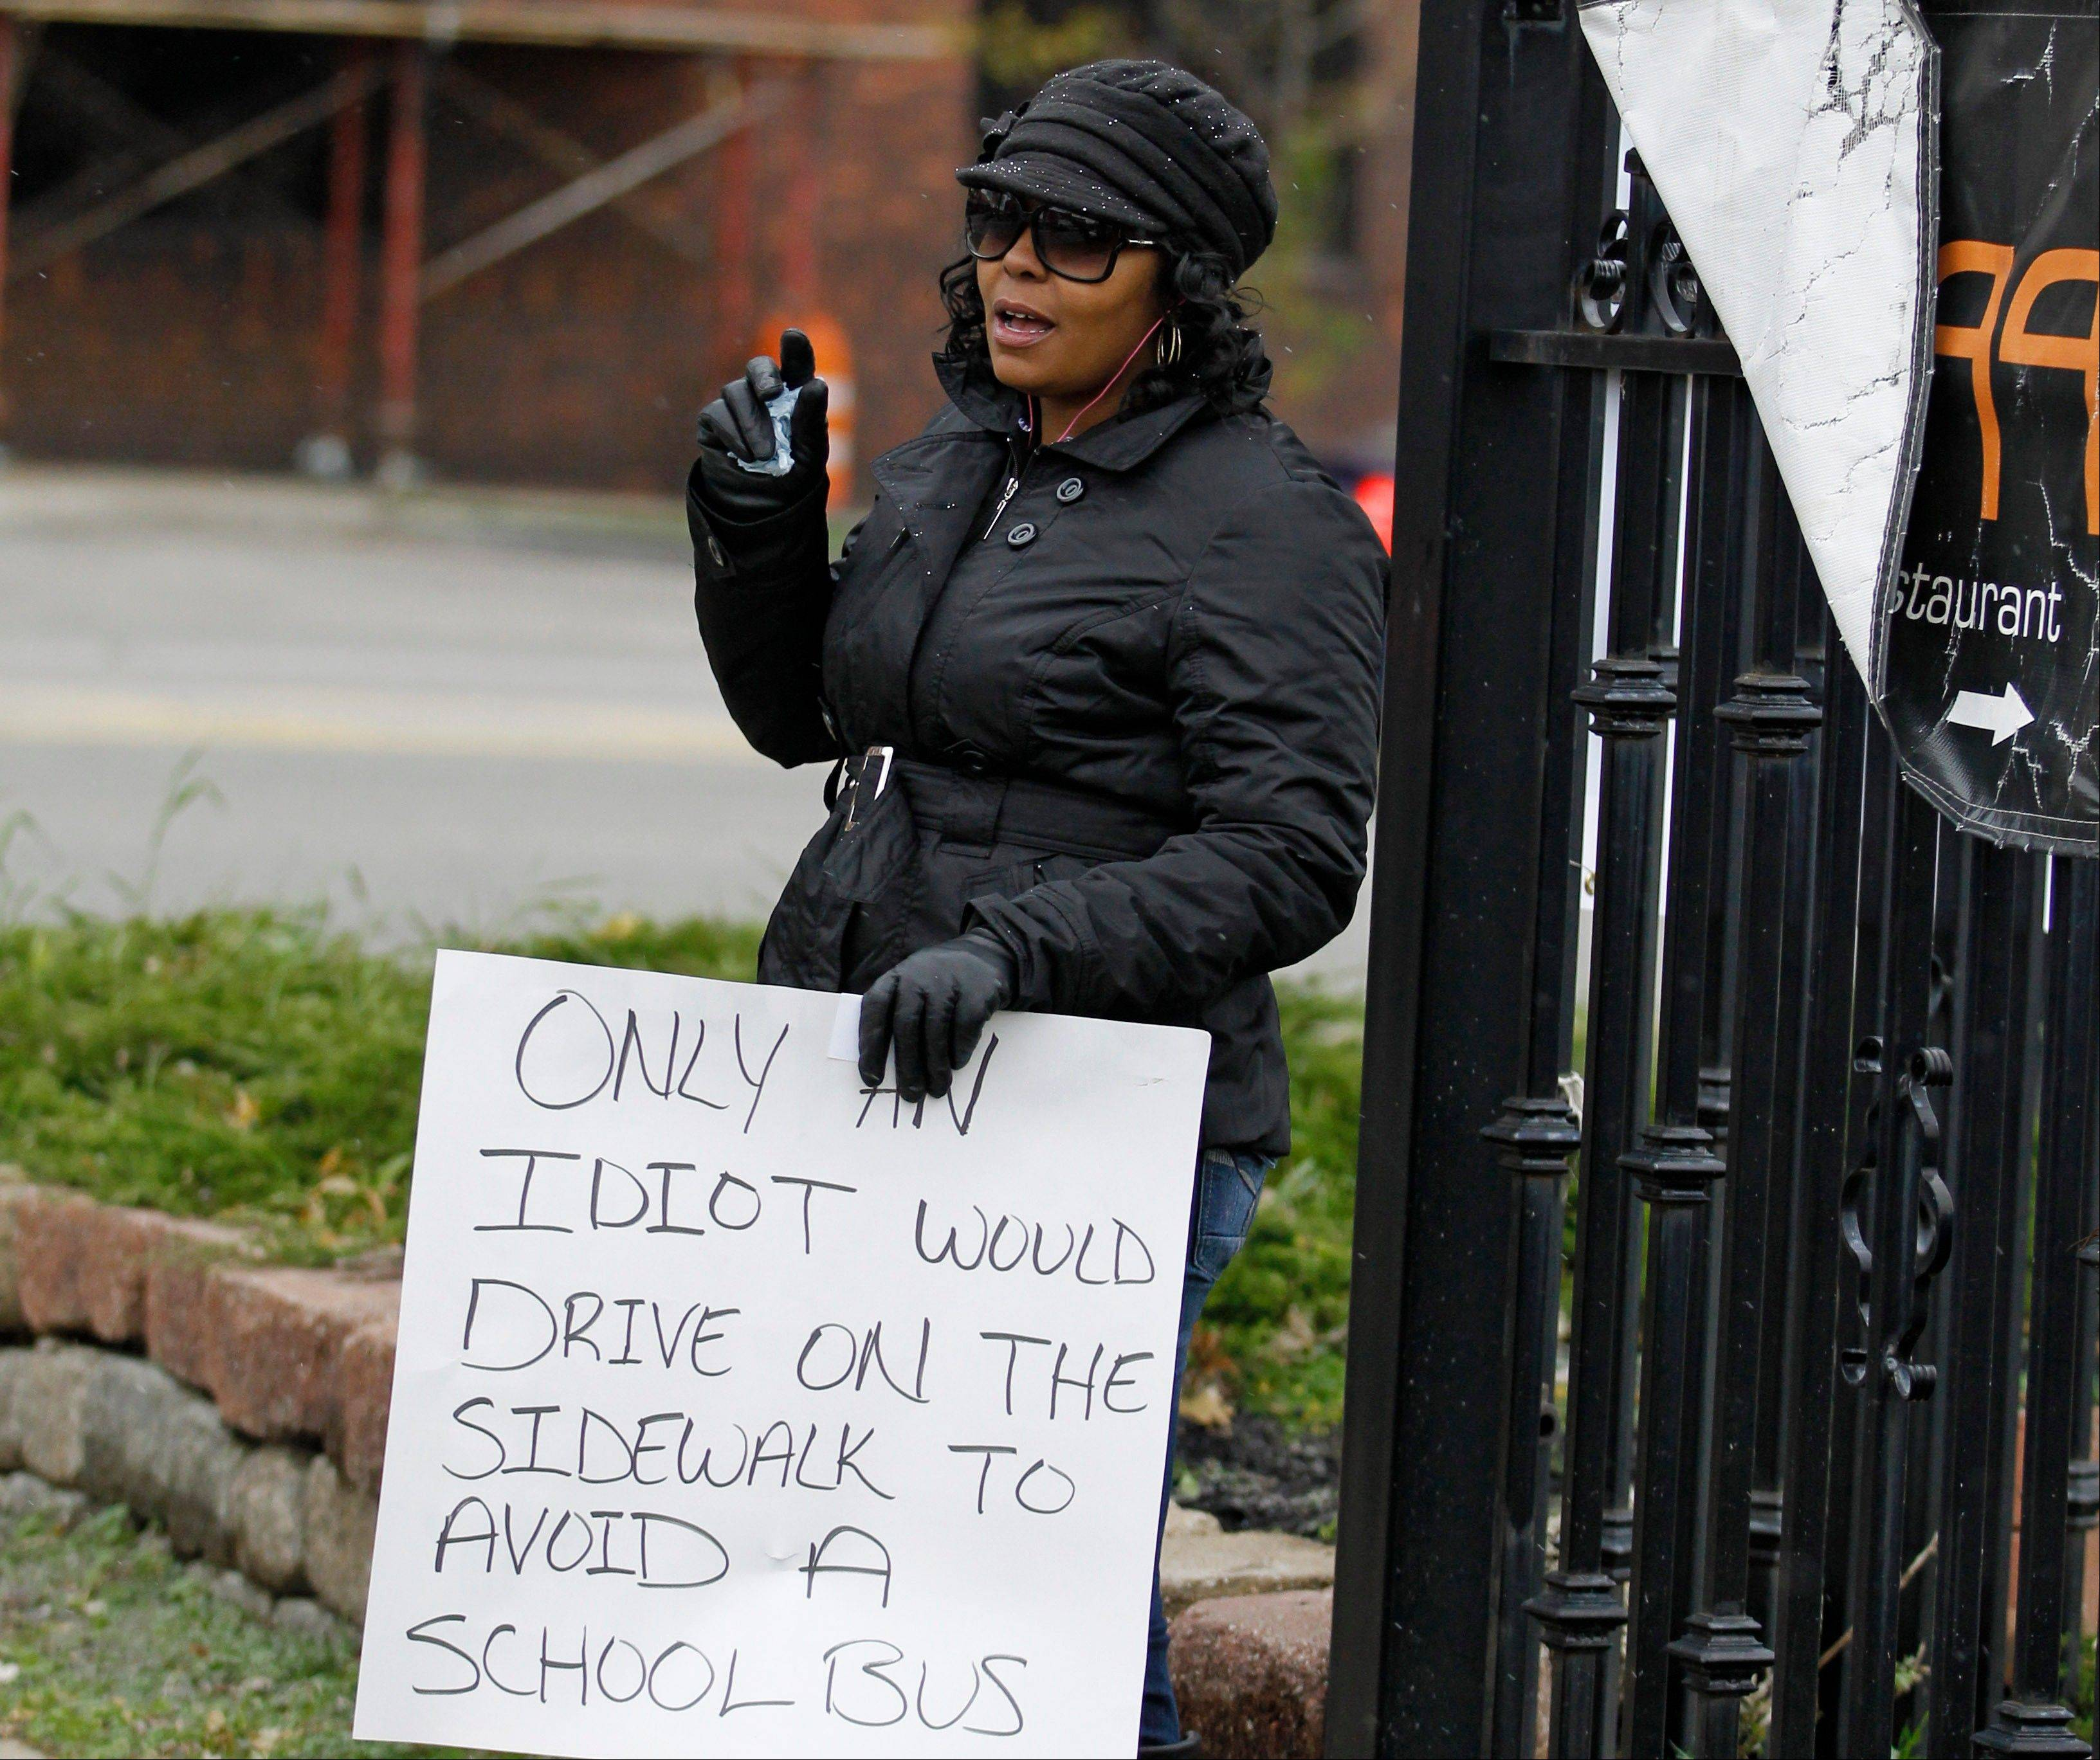 Shena Hardin holds up a sign to serve a highly public sentence Tuesday, Nov. 13, 2012, in Cleveland, for driving on a sidewalk to avoid a Cleveland school bus that was unloading children. A Cleveland Municipal Court judge ordered 32-year-old Hardin to serve the highly public sentence for one hour Tuesday and Wednesday.